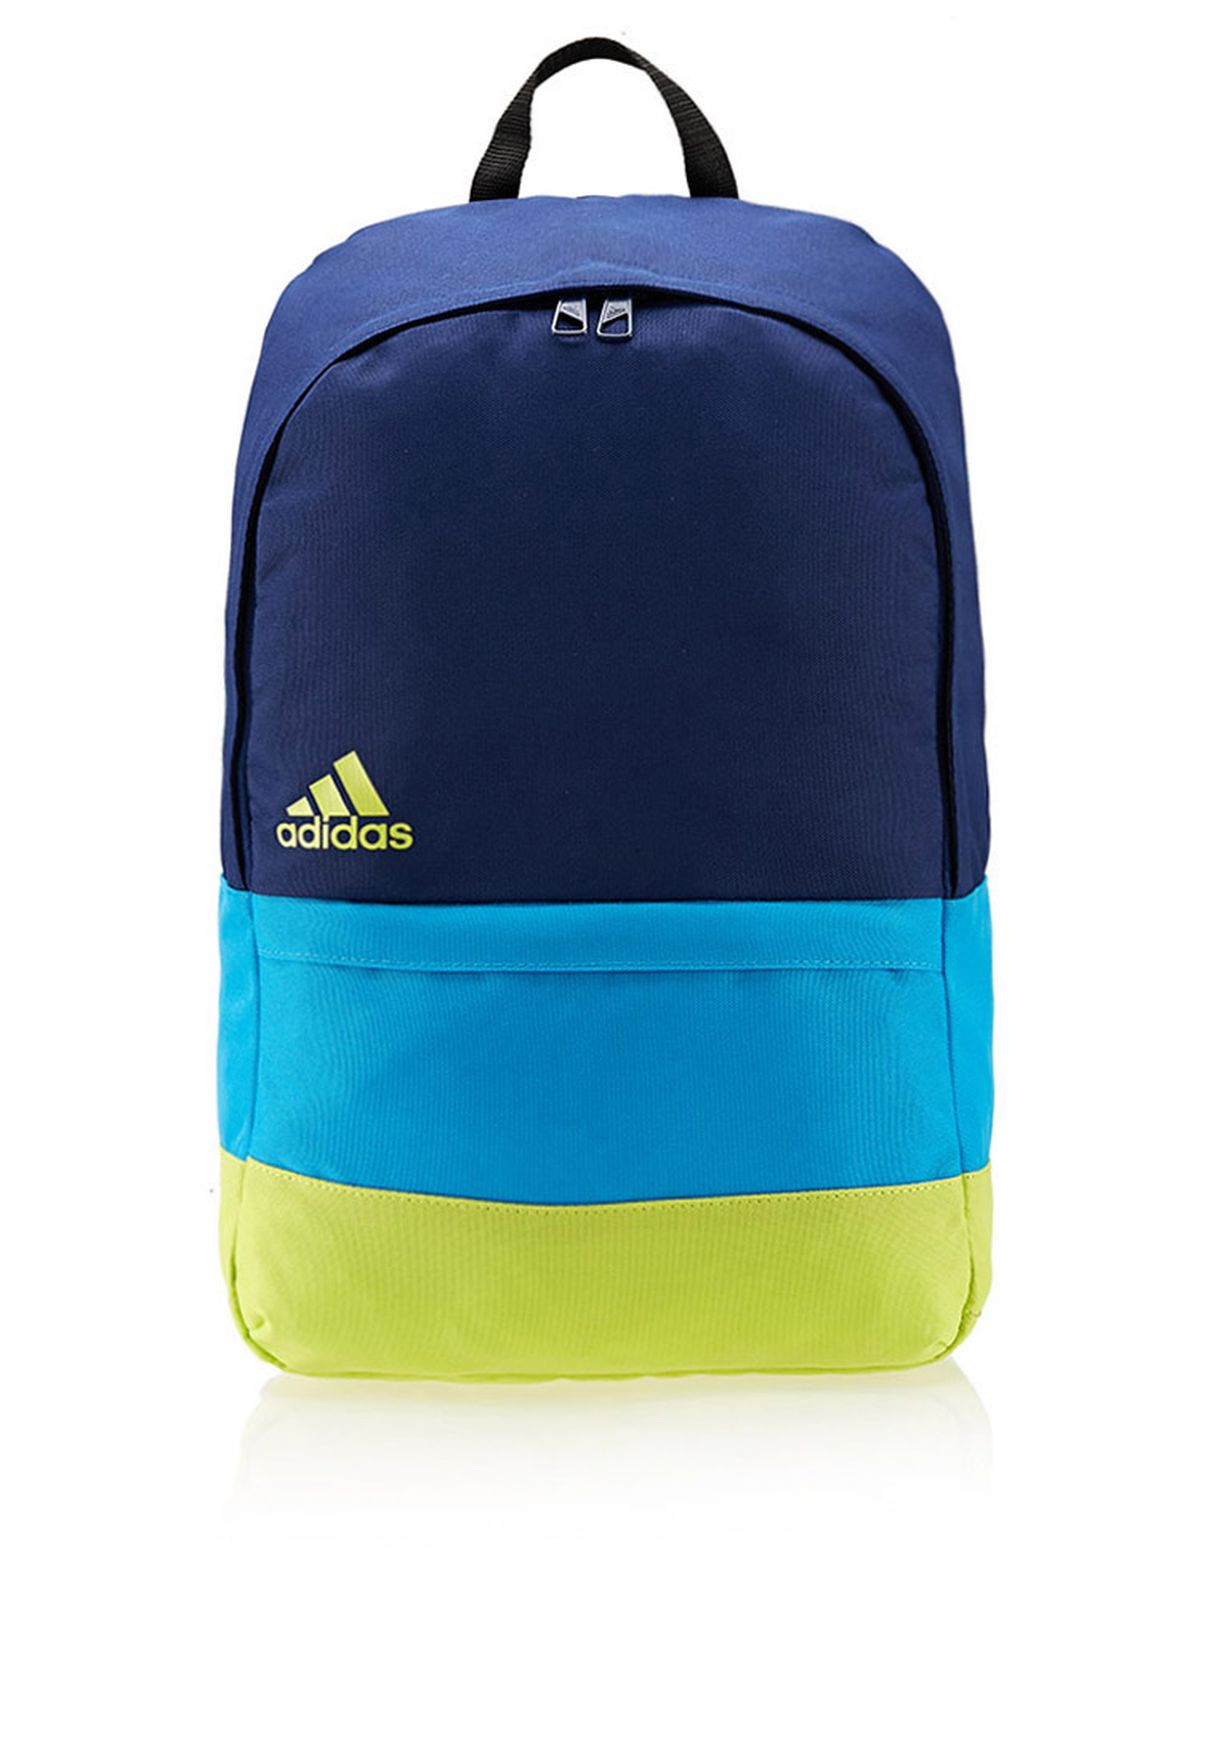 e4603ee7936a Shop adidas blue Versatile Block Backpack F49832 for Men in Qatar -  AD476AC57RXY